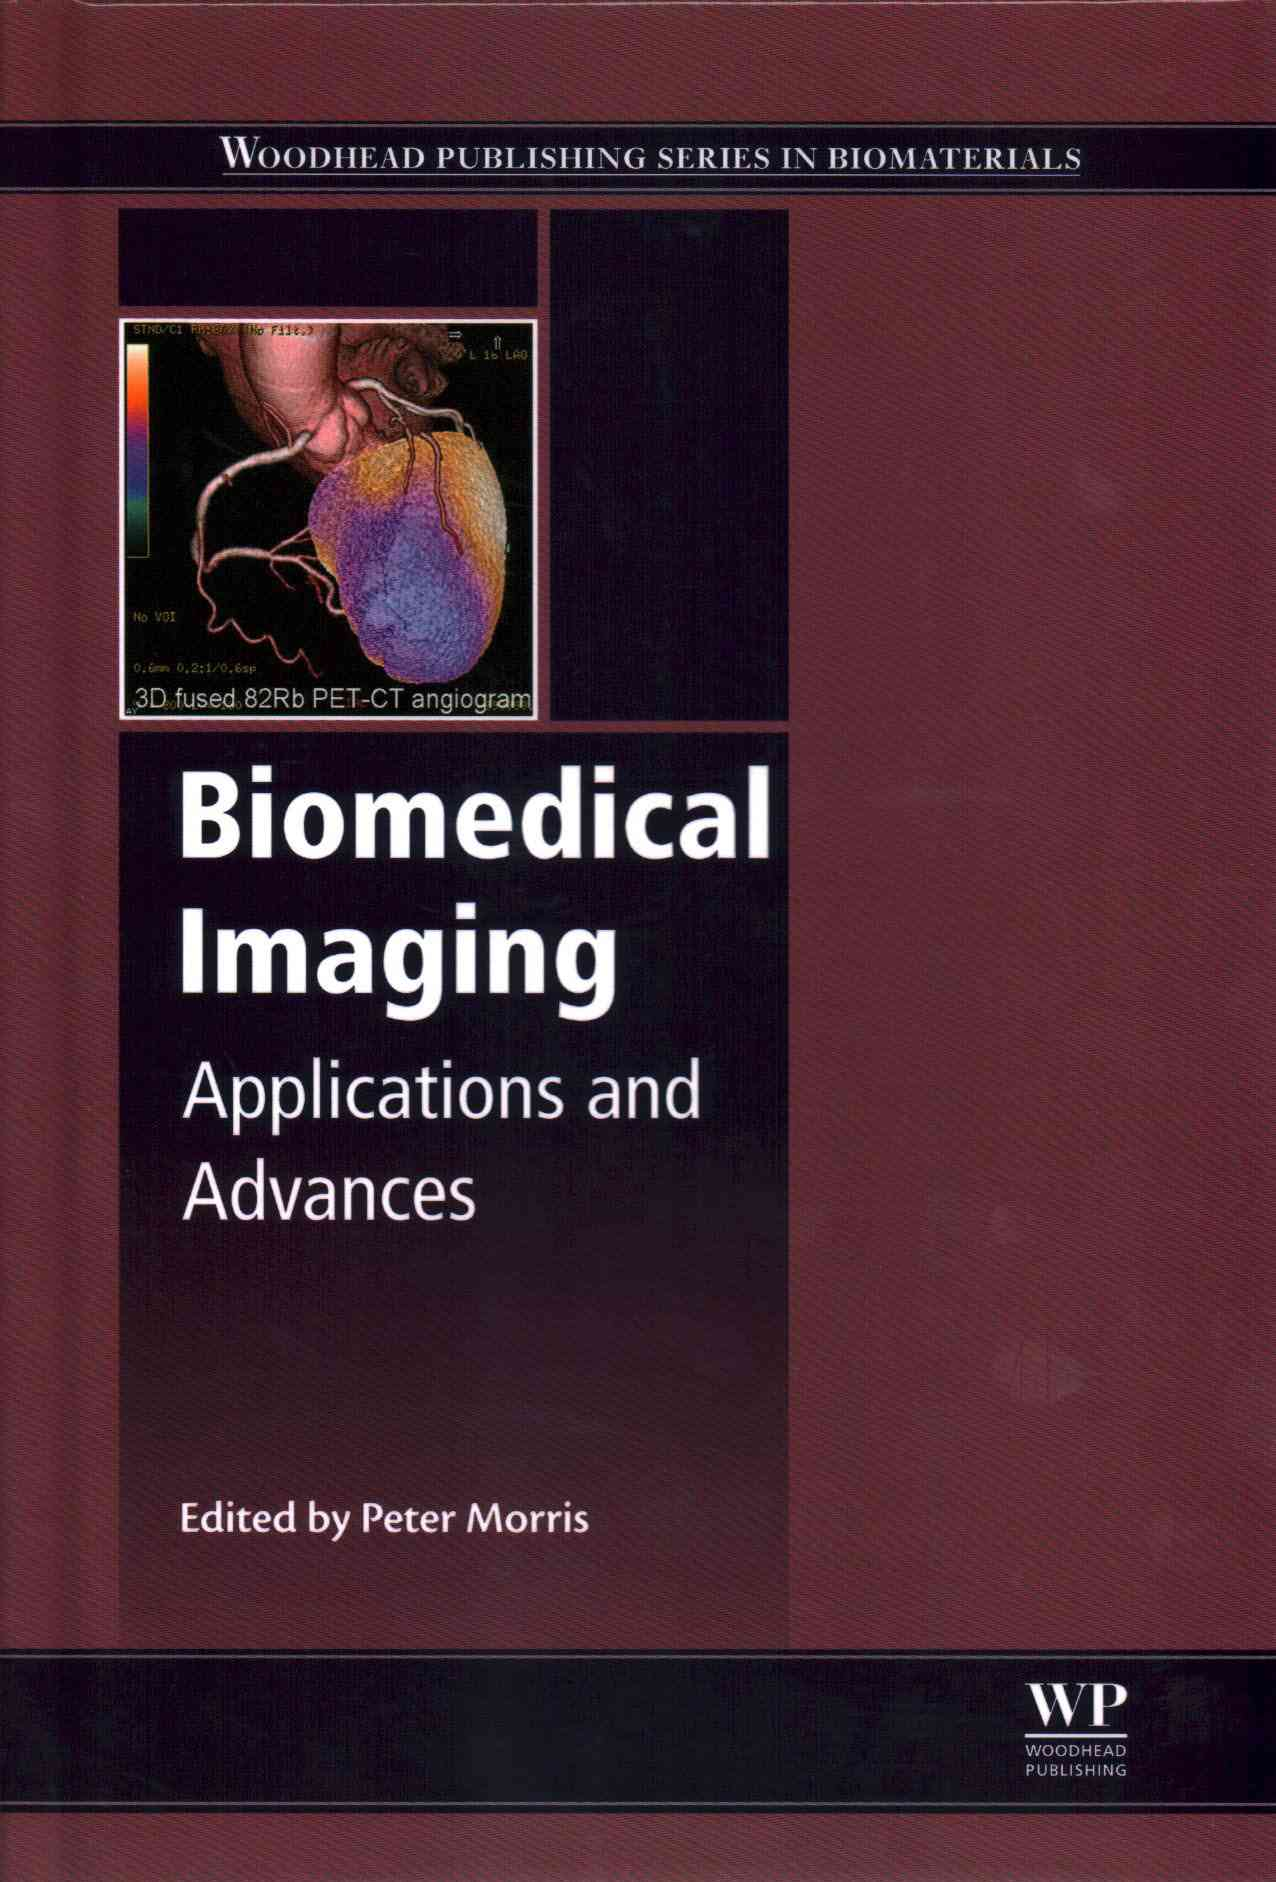 Biomedical Imaging By Morris, Peter (EDT)